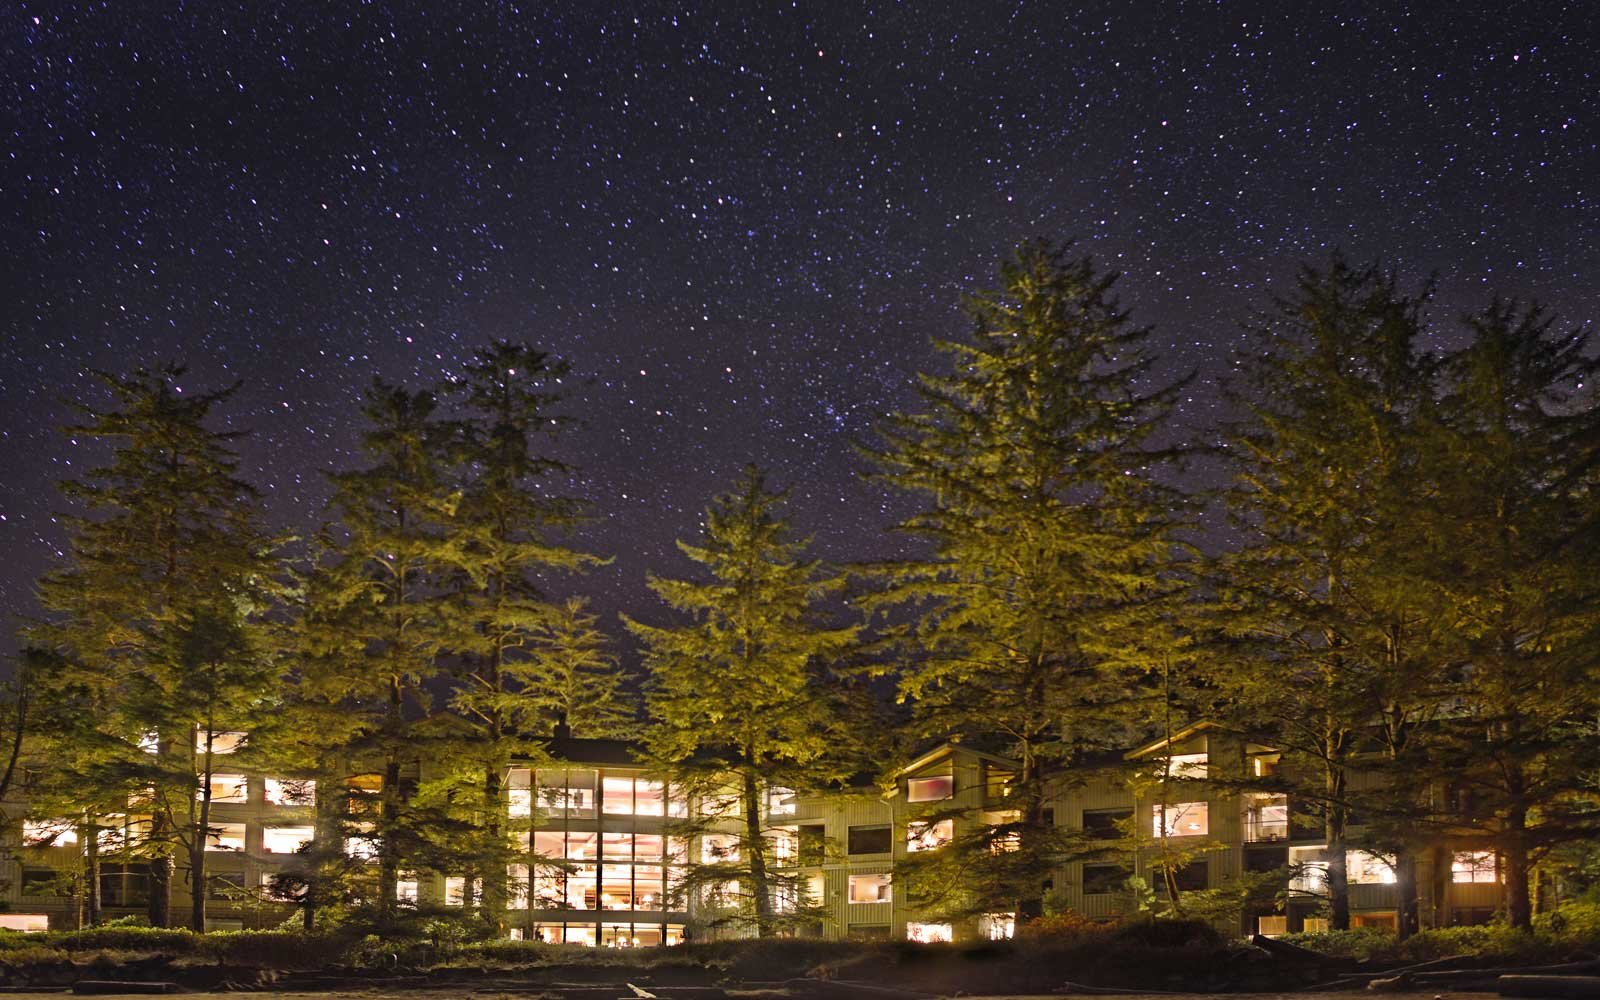 Wickaninnish Inn, British Columbia, under the stars